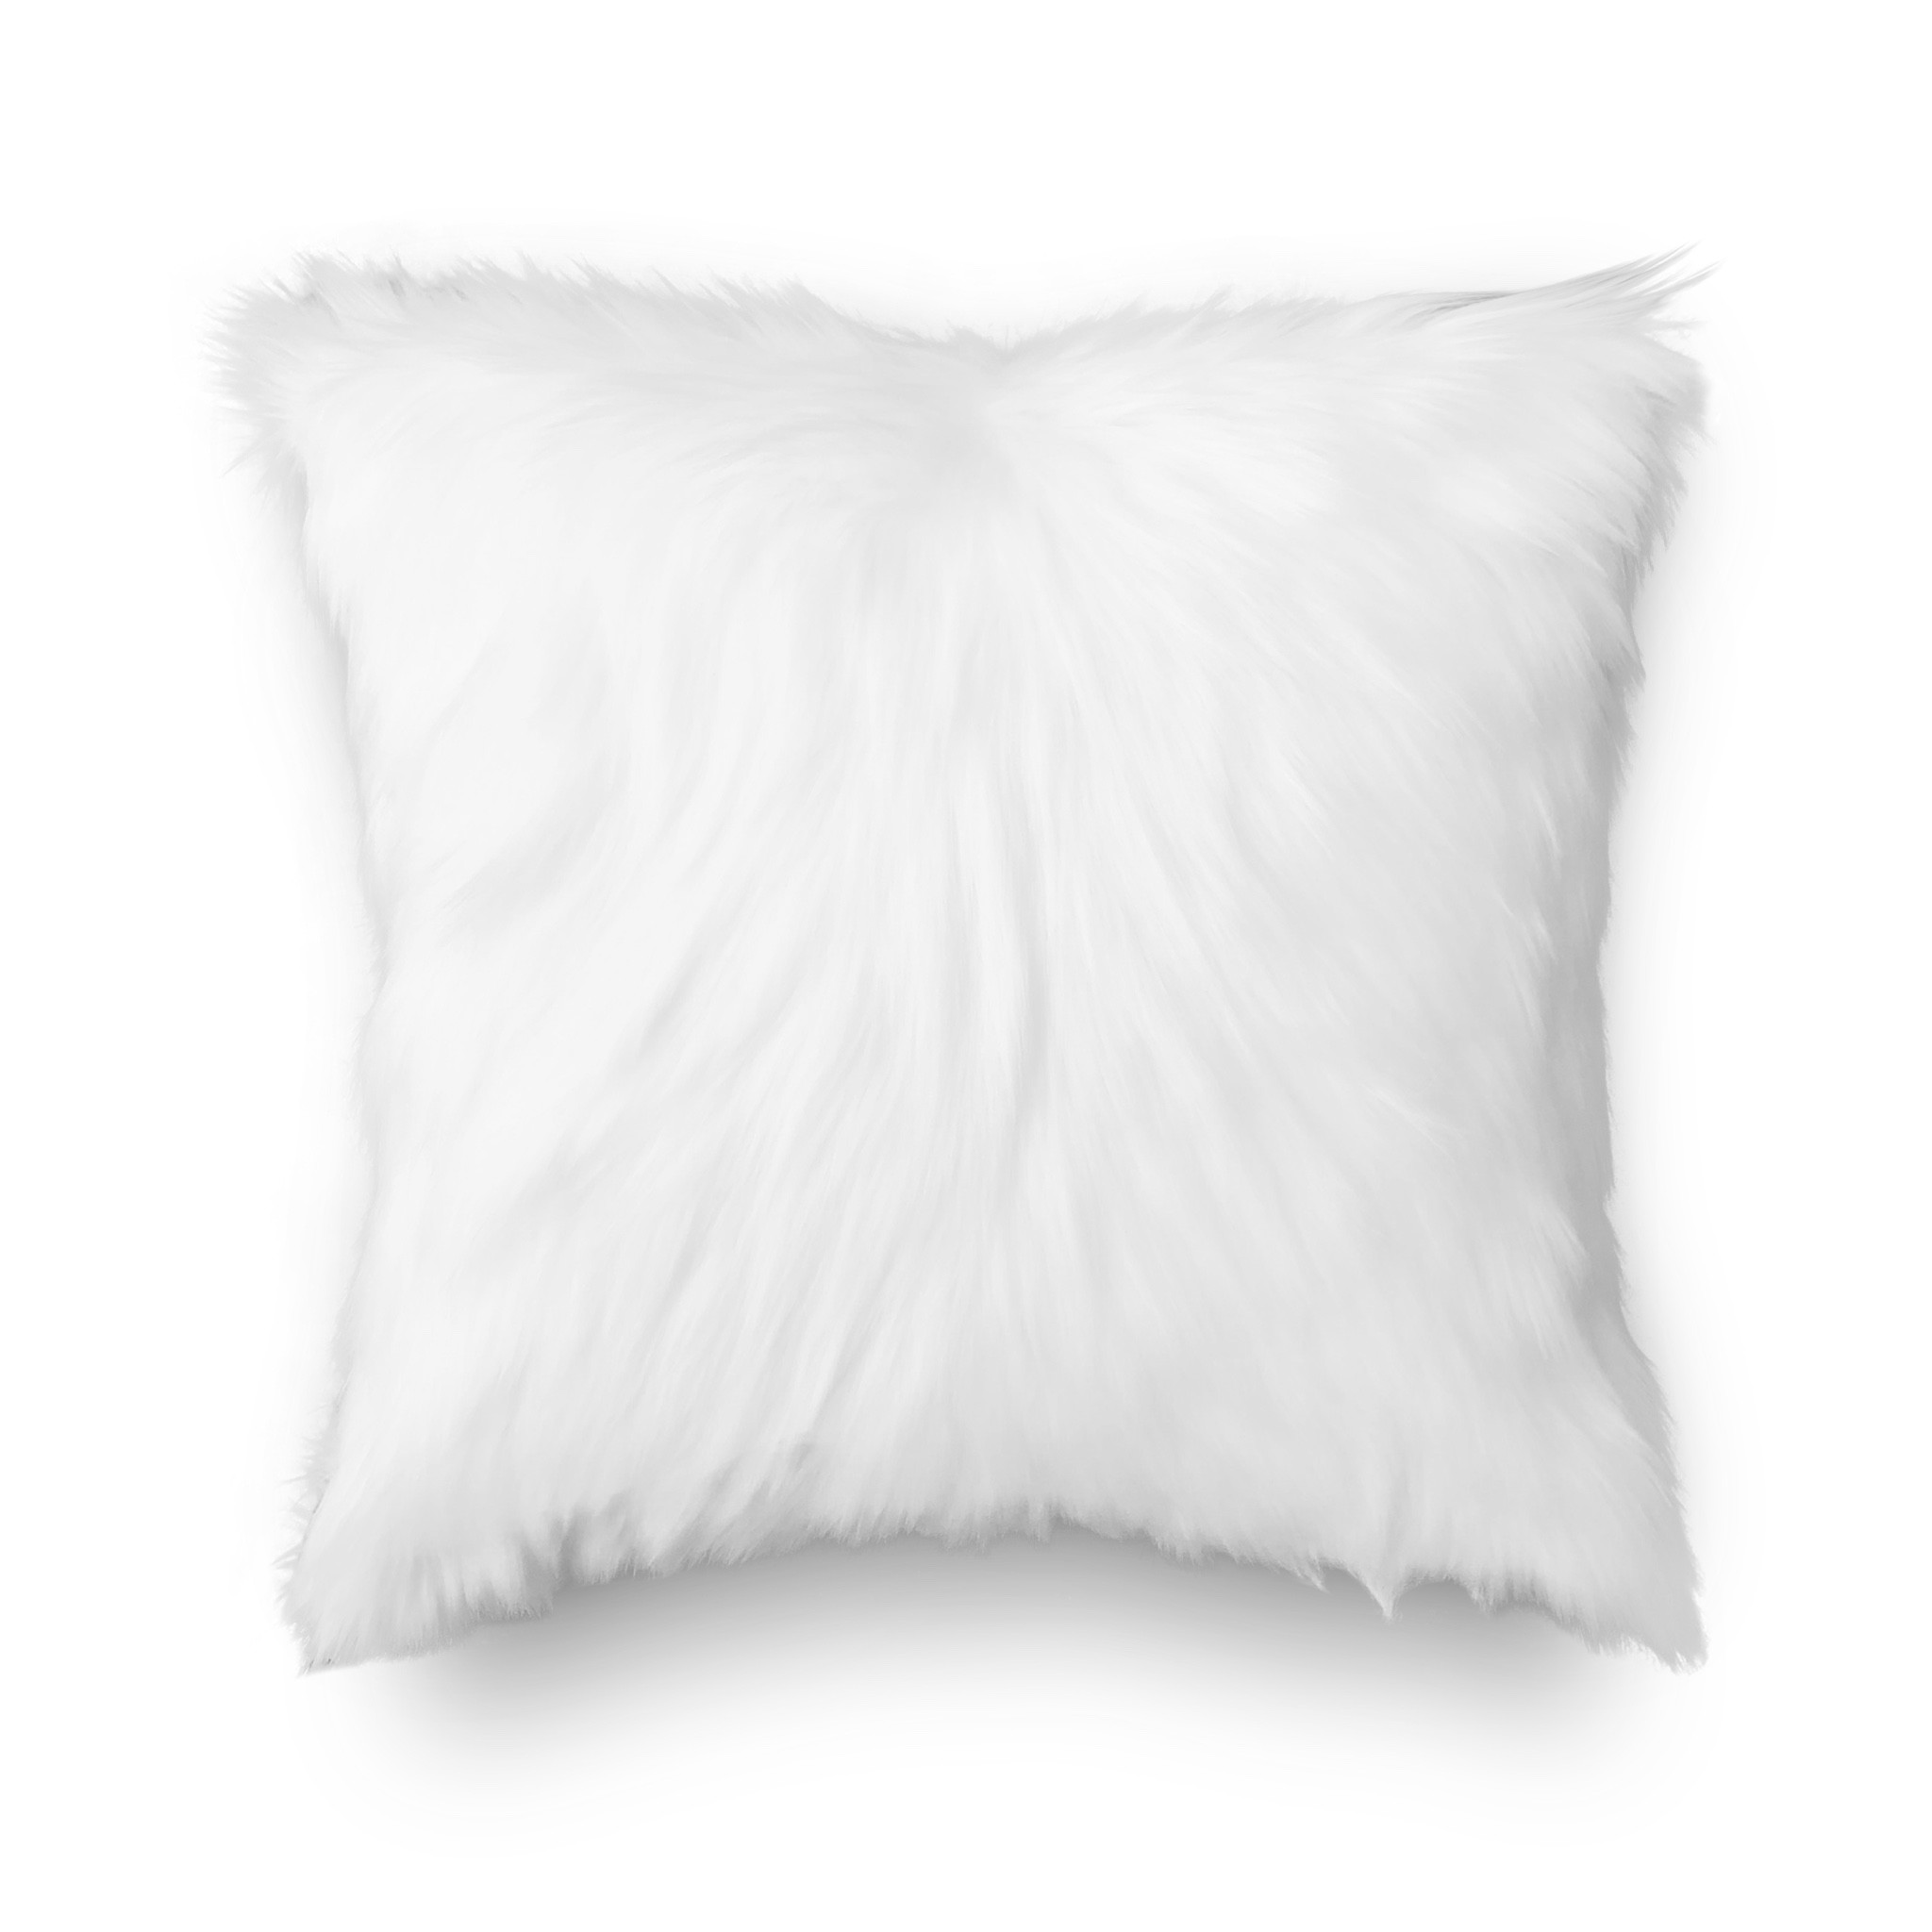 Cushion cover 76 Luxury Soft Fleece White